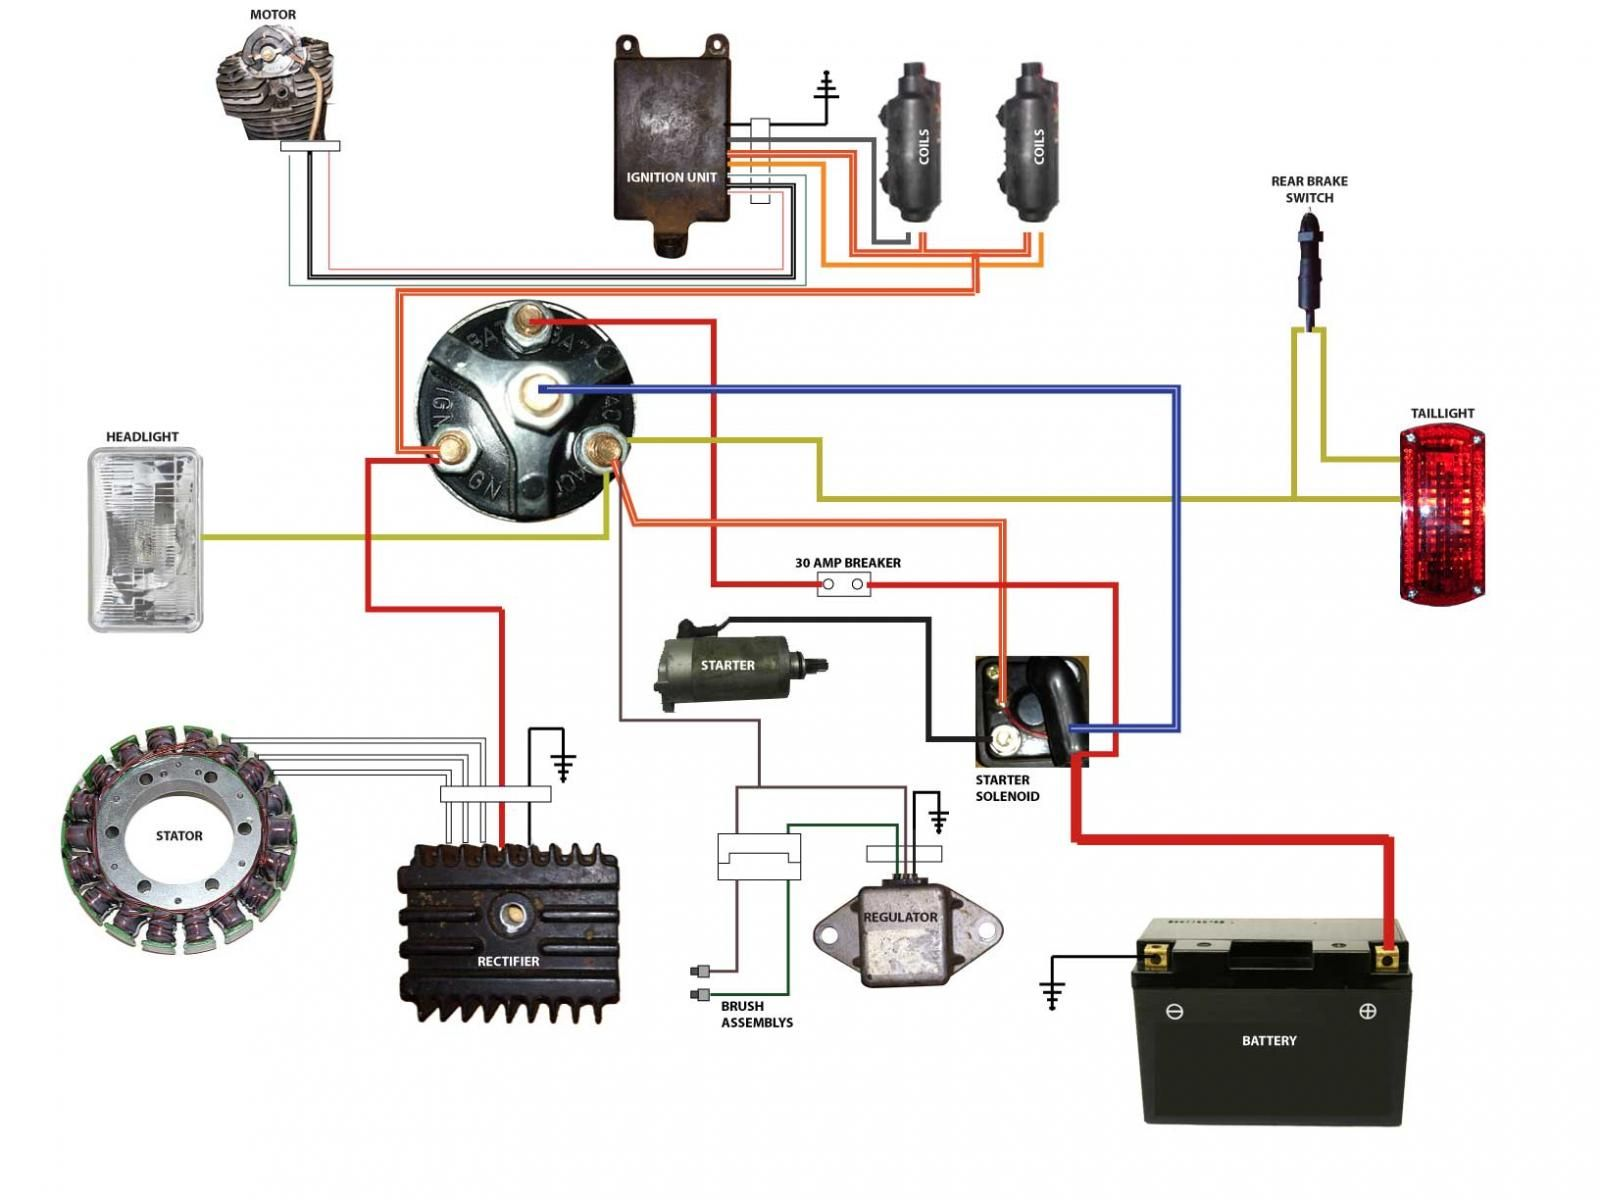 simplified wiring diagram for xs400 cafe | Projects to Try ...